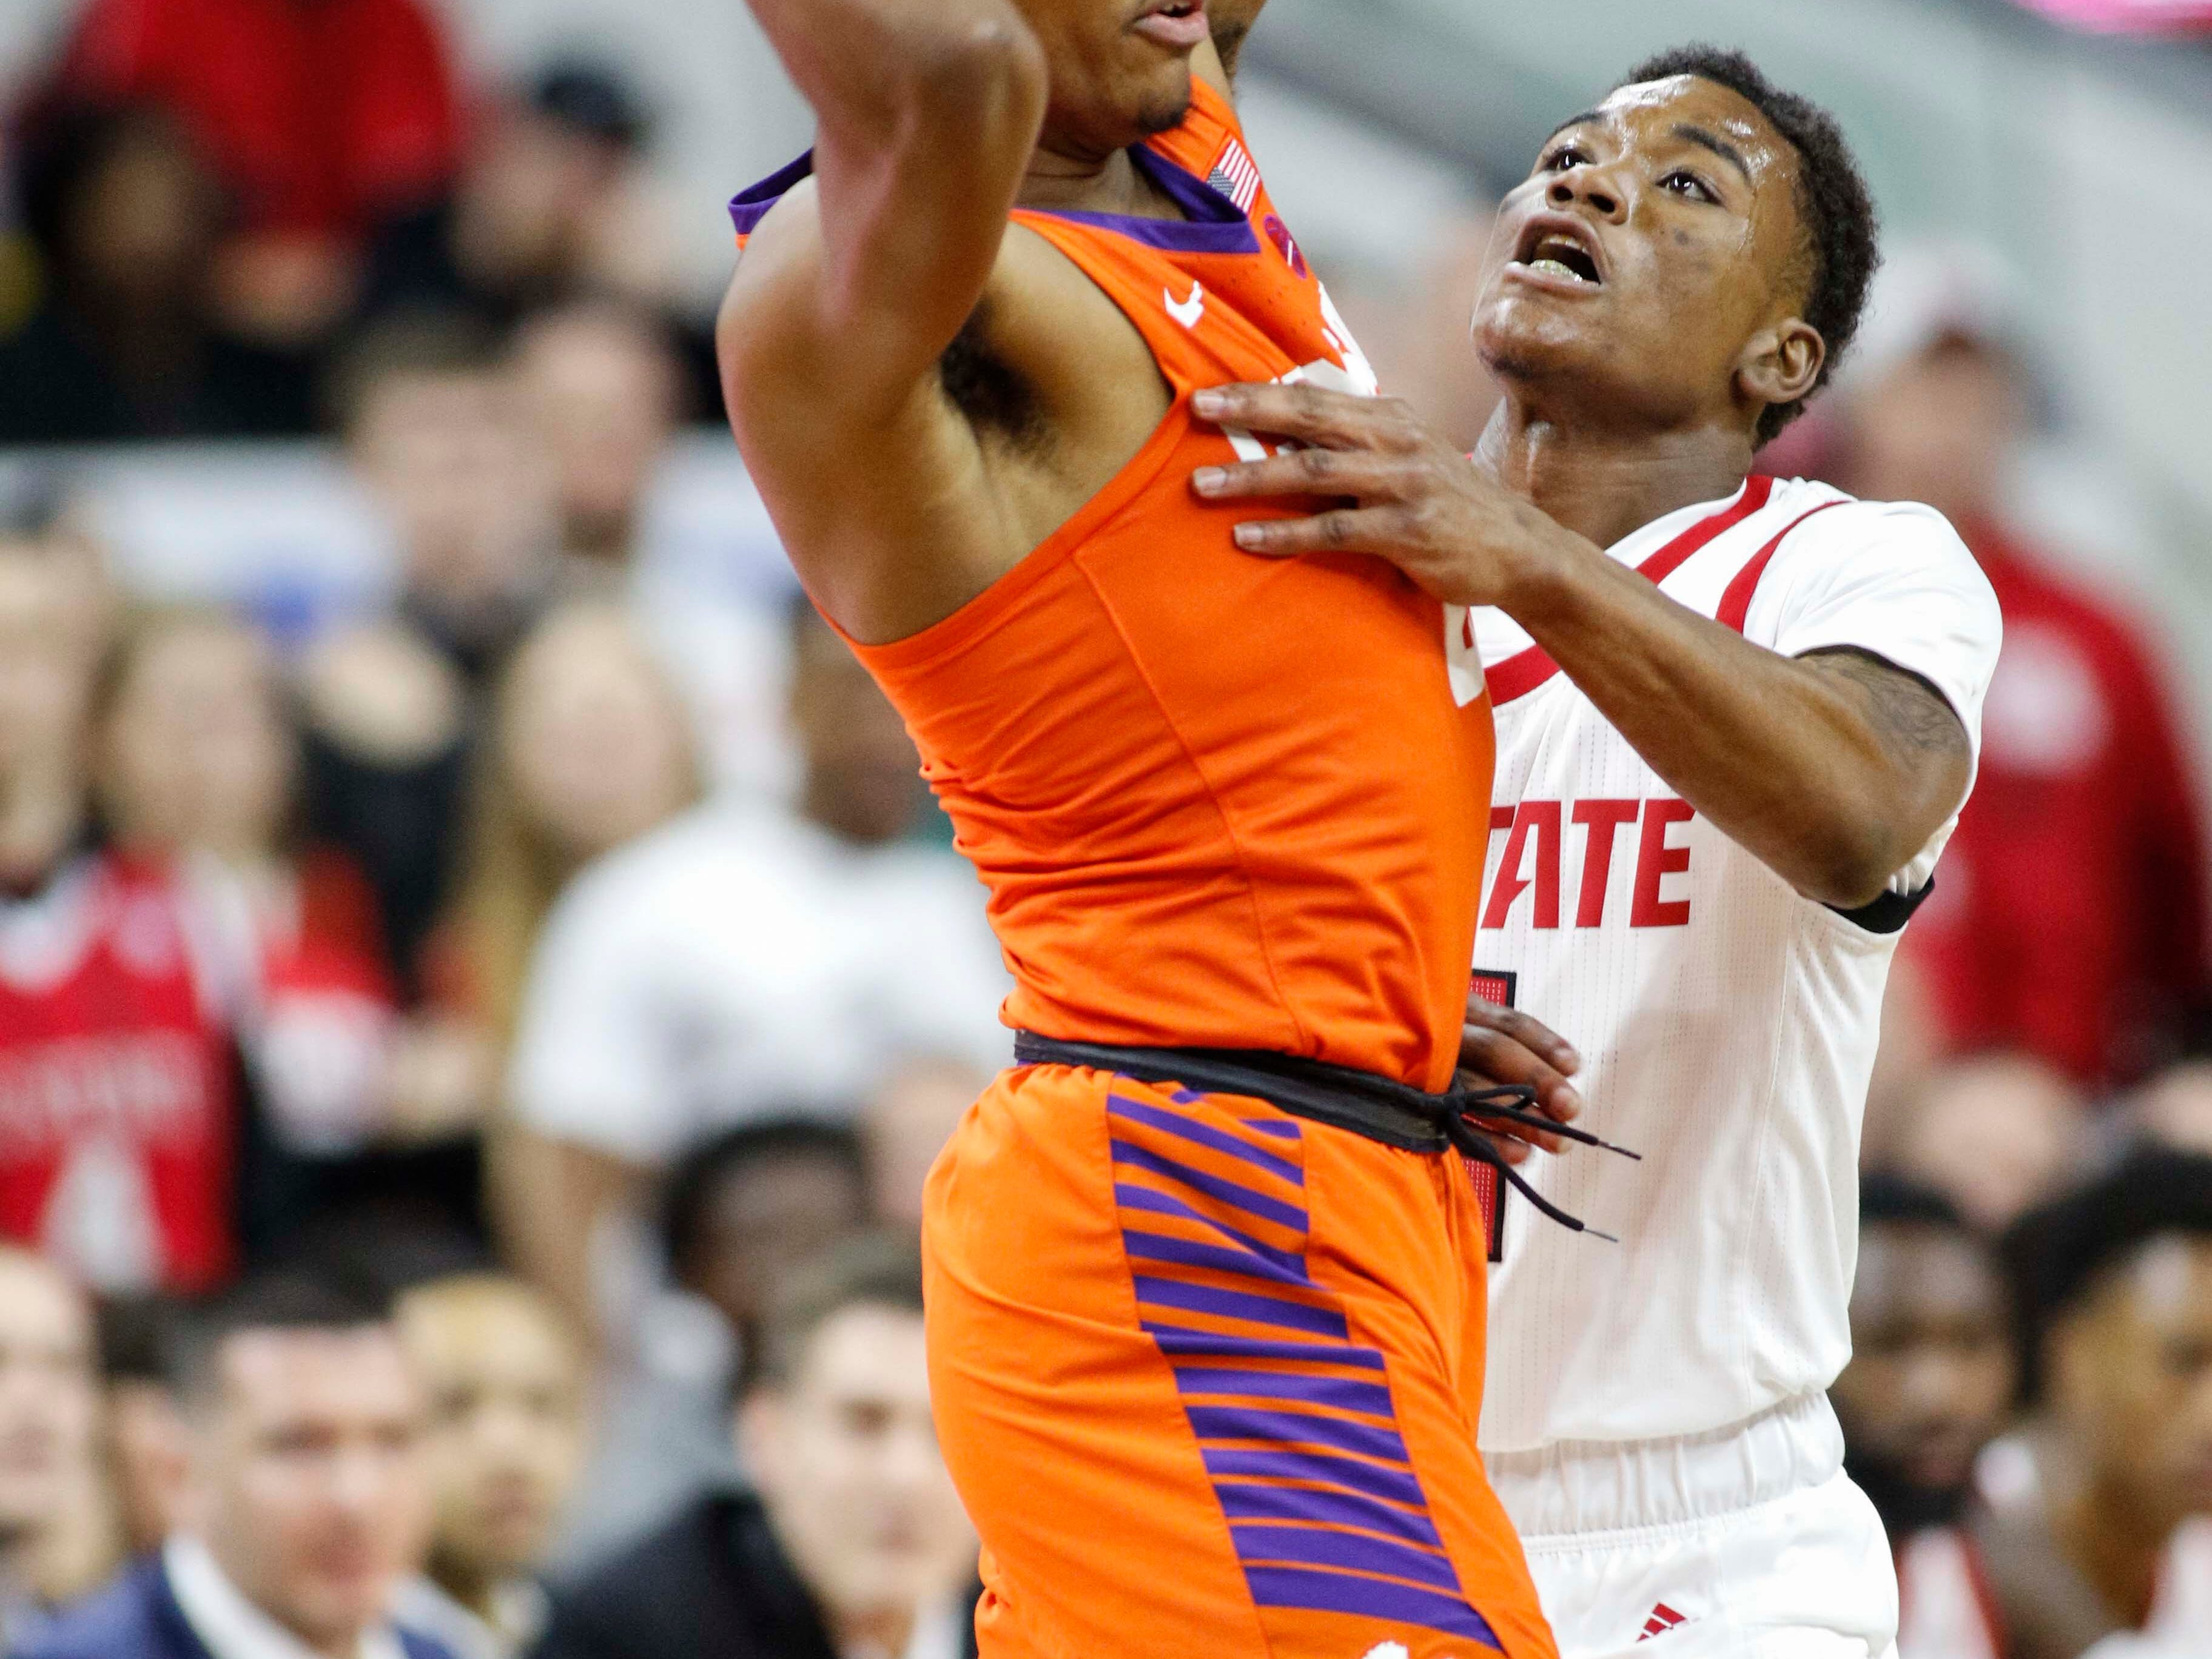 Jan 26, 2019; Raleigh, NC, USA; Clemson Tigers guard Clyde Trapp, left, keeps the ball from North Carolina State Wolfpack guard Markell Johnson (11) in the first half at PNC Arena. Mandatory Credit: Nell Redmond-USA TODAY Sports